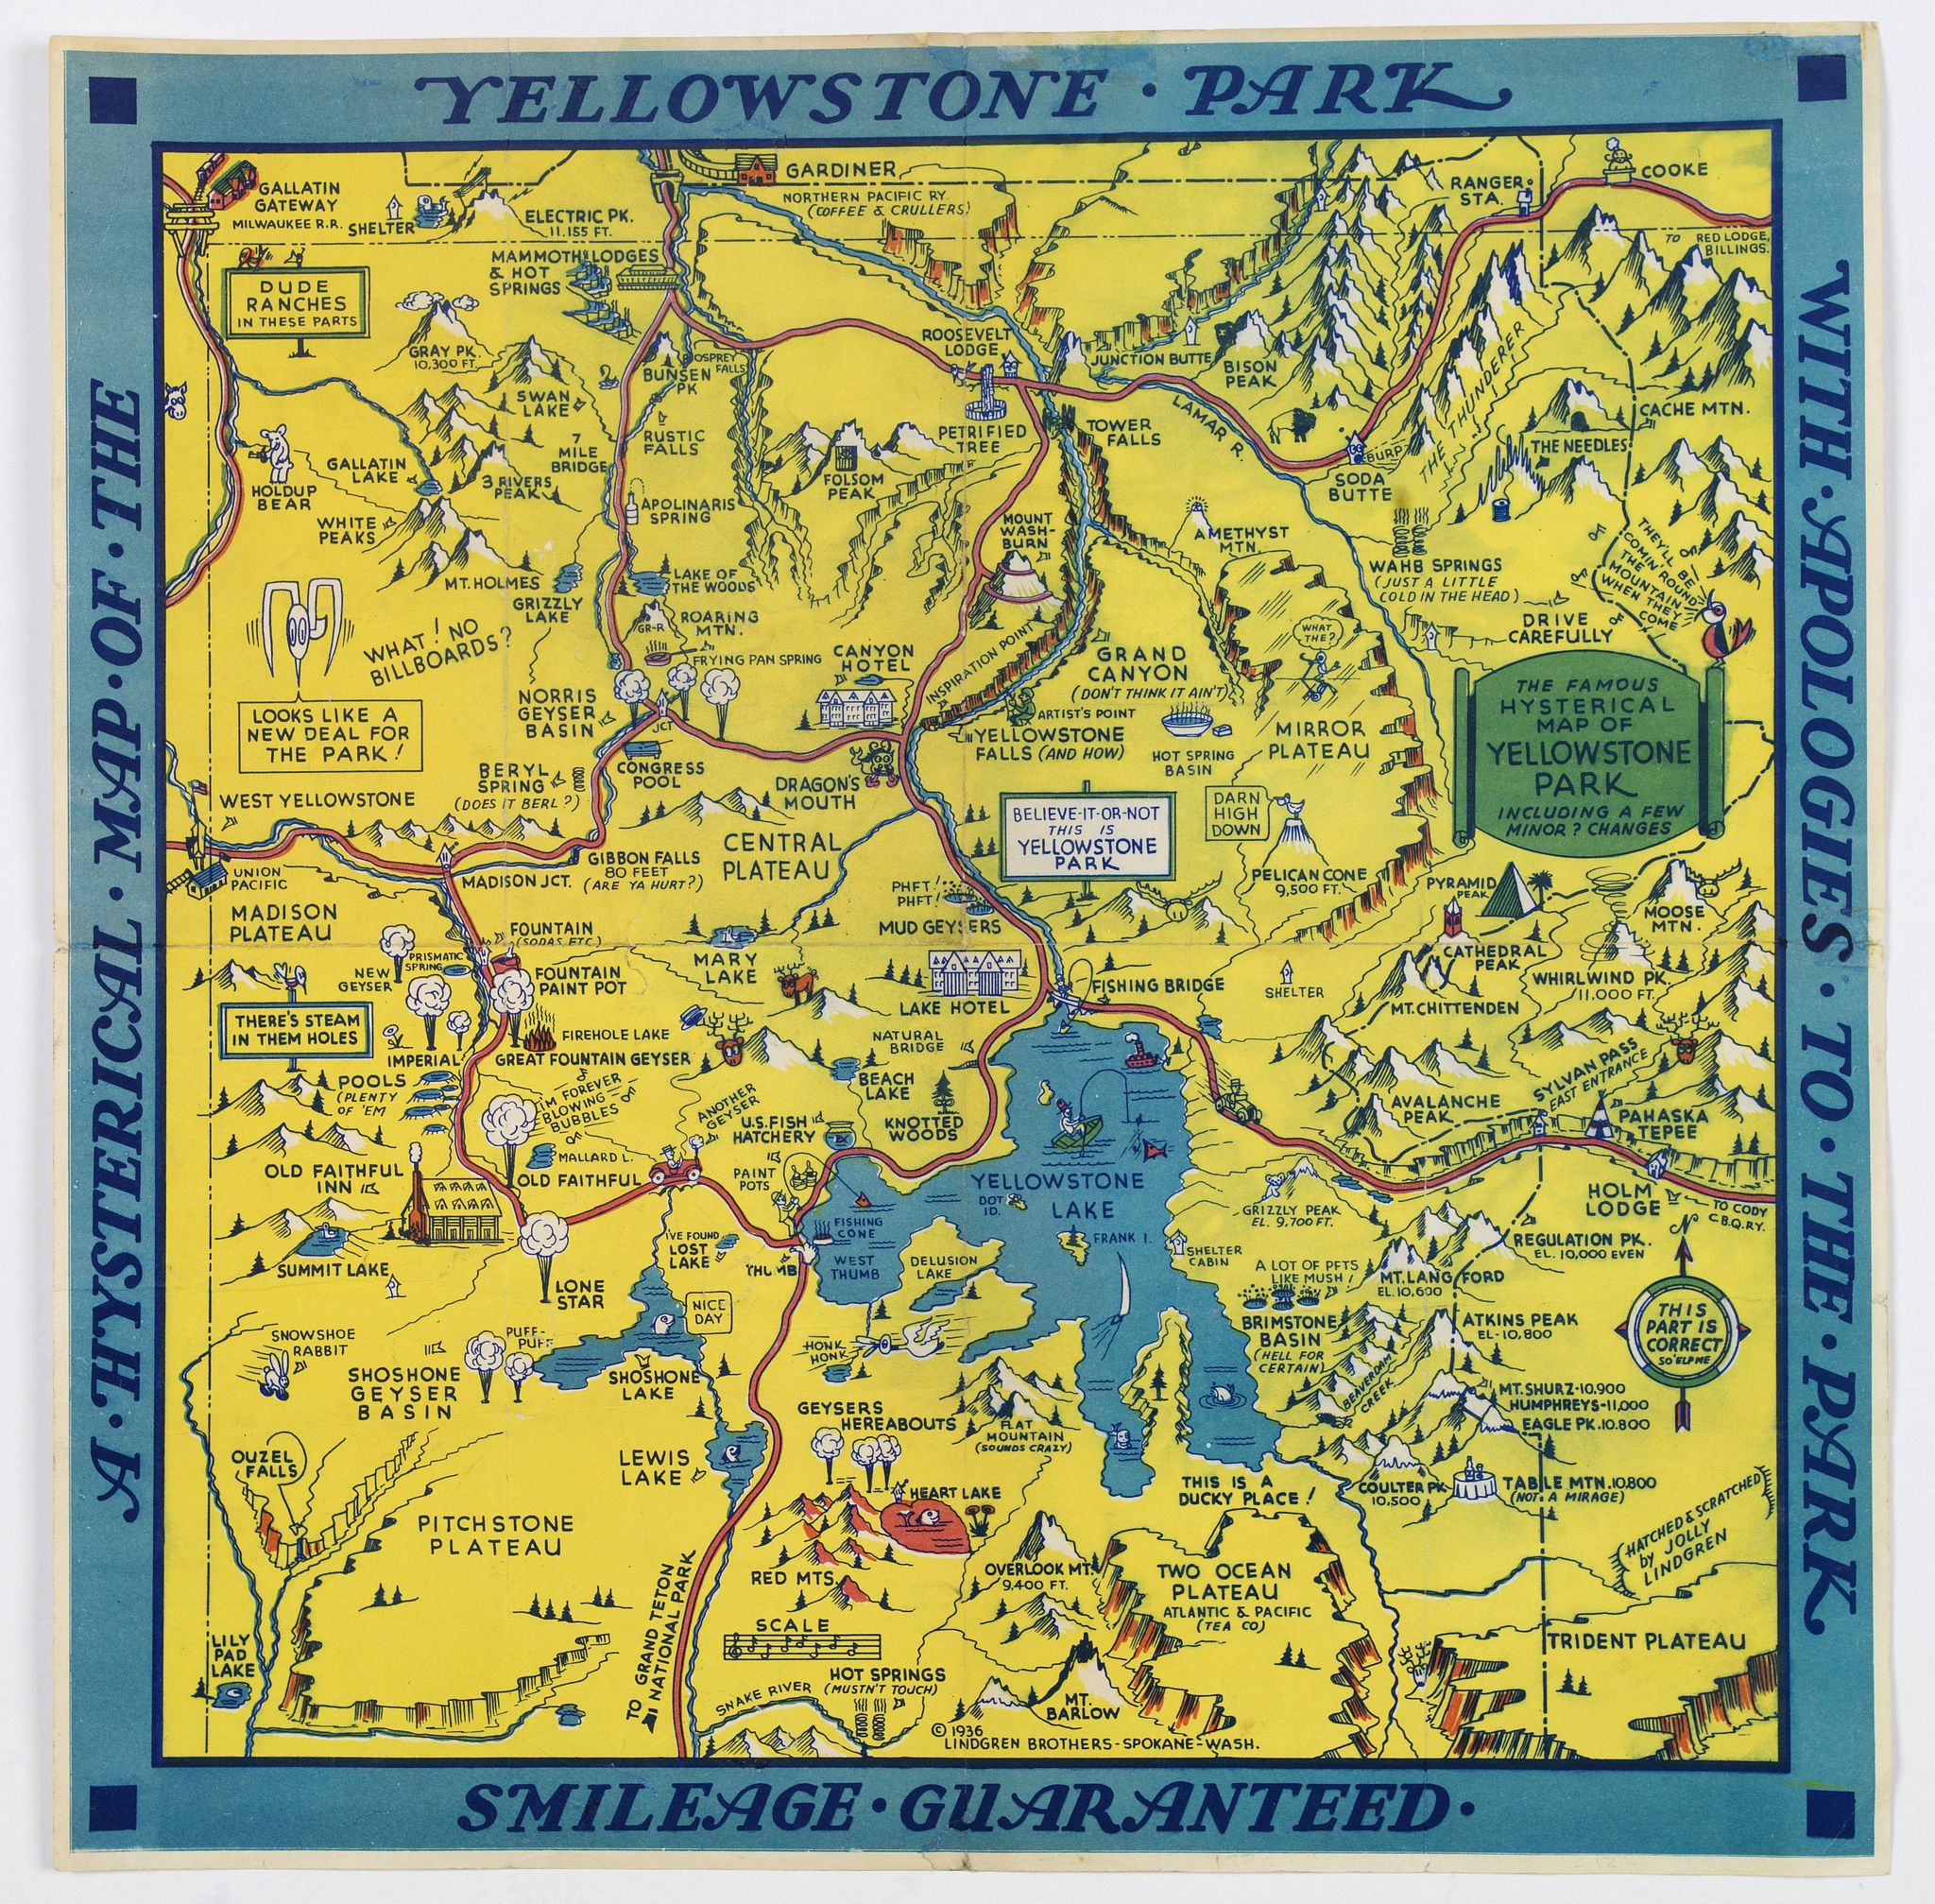 LINDGREN, Jolly Elmer.,  The Famous Hysterical Map of Yellowstone Park, including a few minor Changes., antique map, old maps